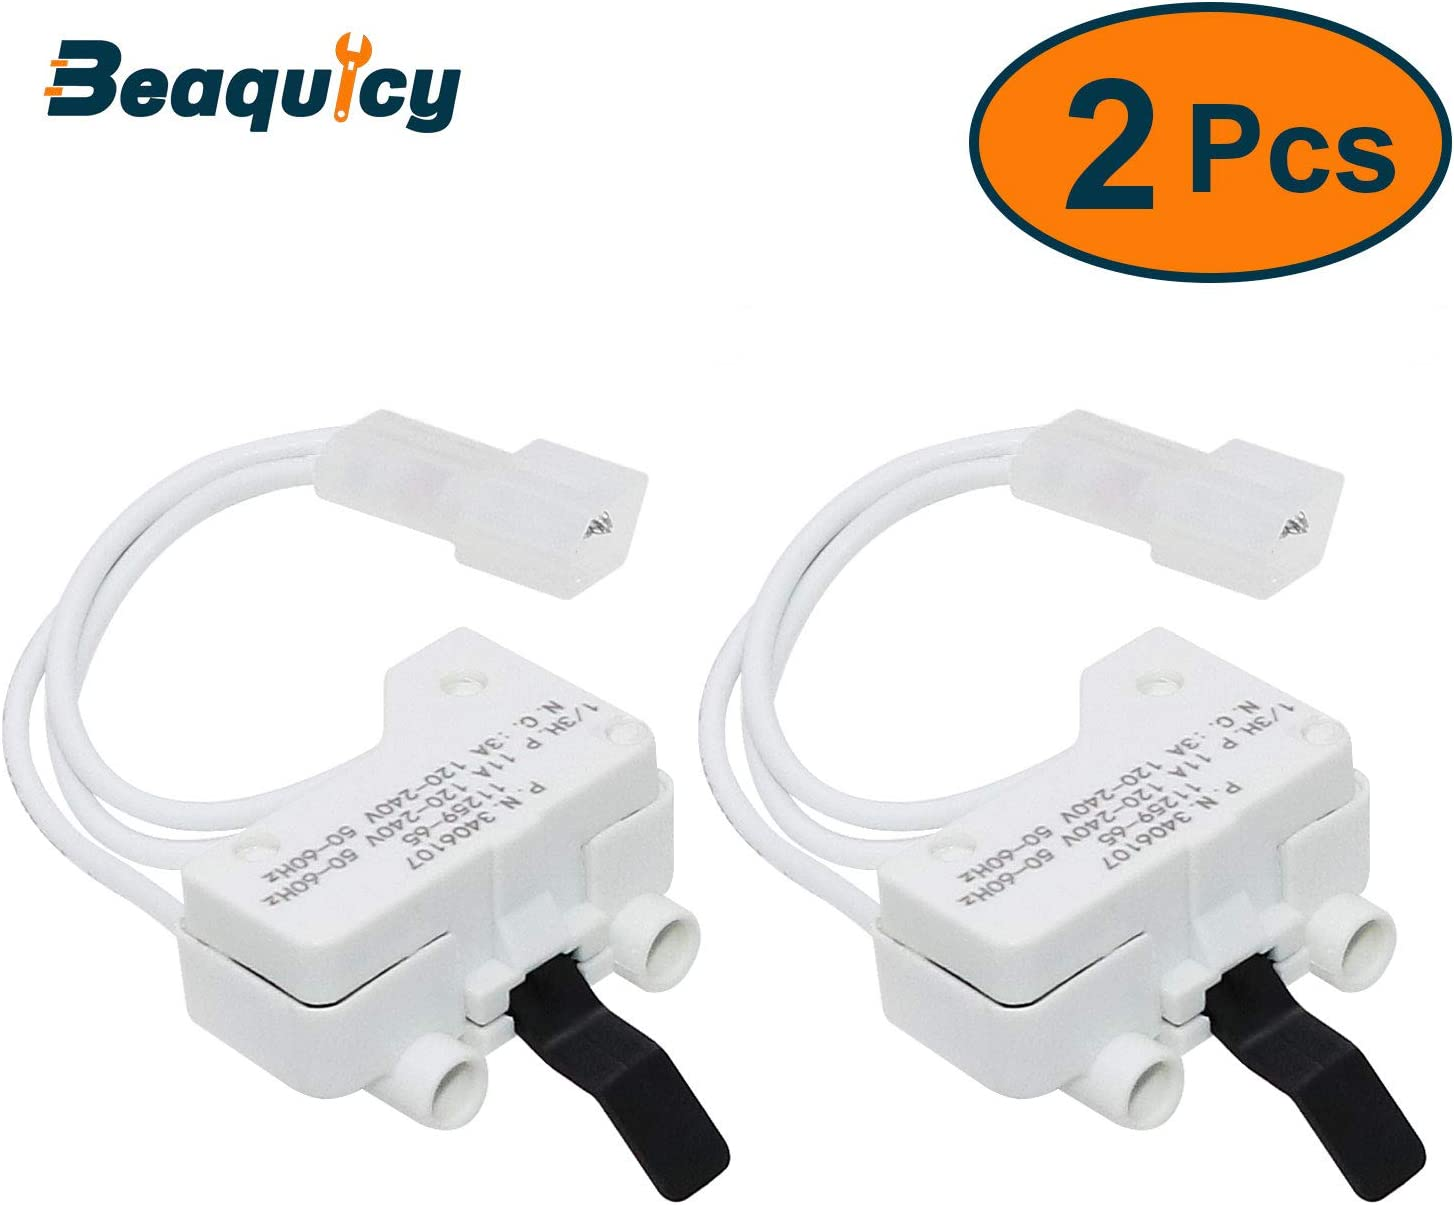 3406107 Dryer Door Switch by Beaquicy - Replacement for Whirlpool, Kenmore, Roper, Amana, Crosley Dryer - Replaces 3406109 (2-Pack)